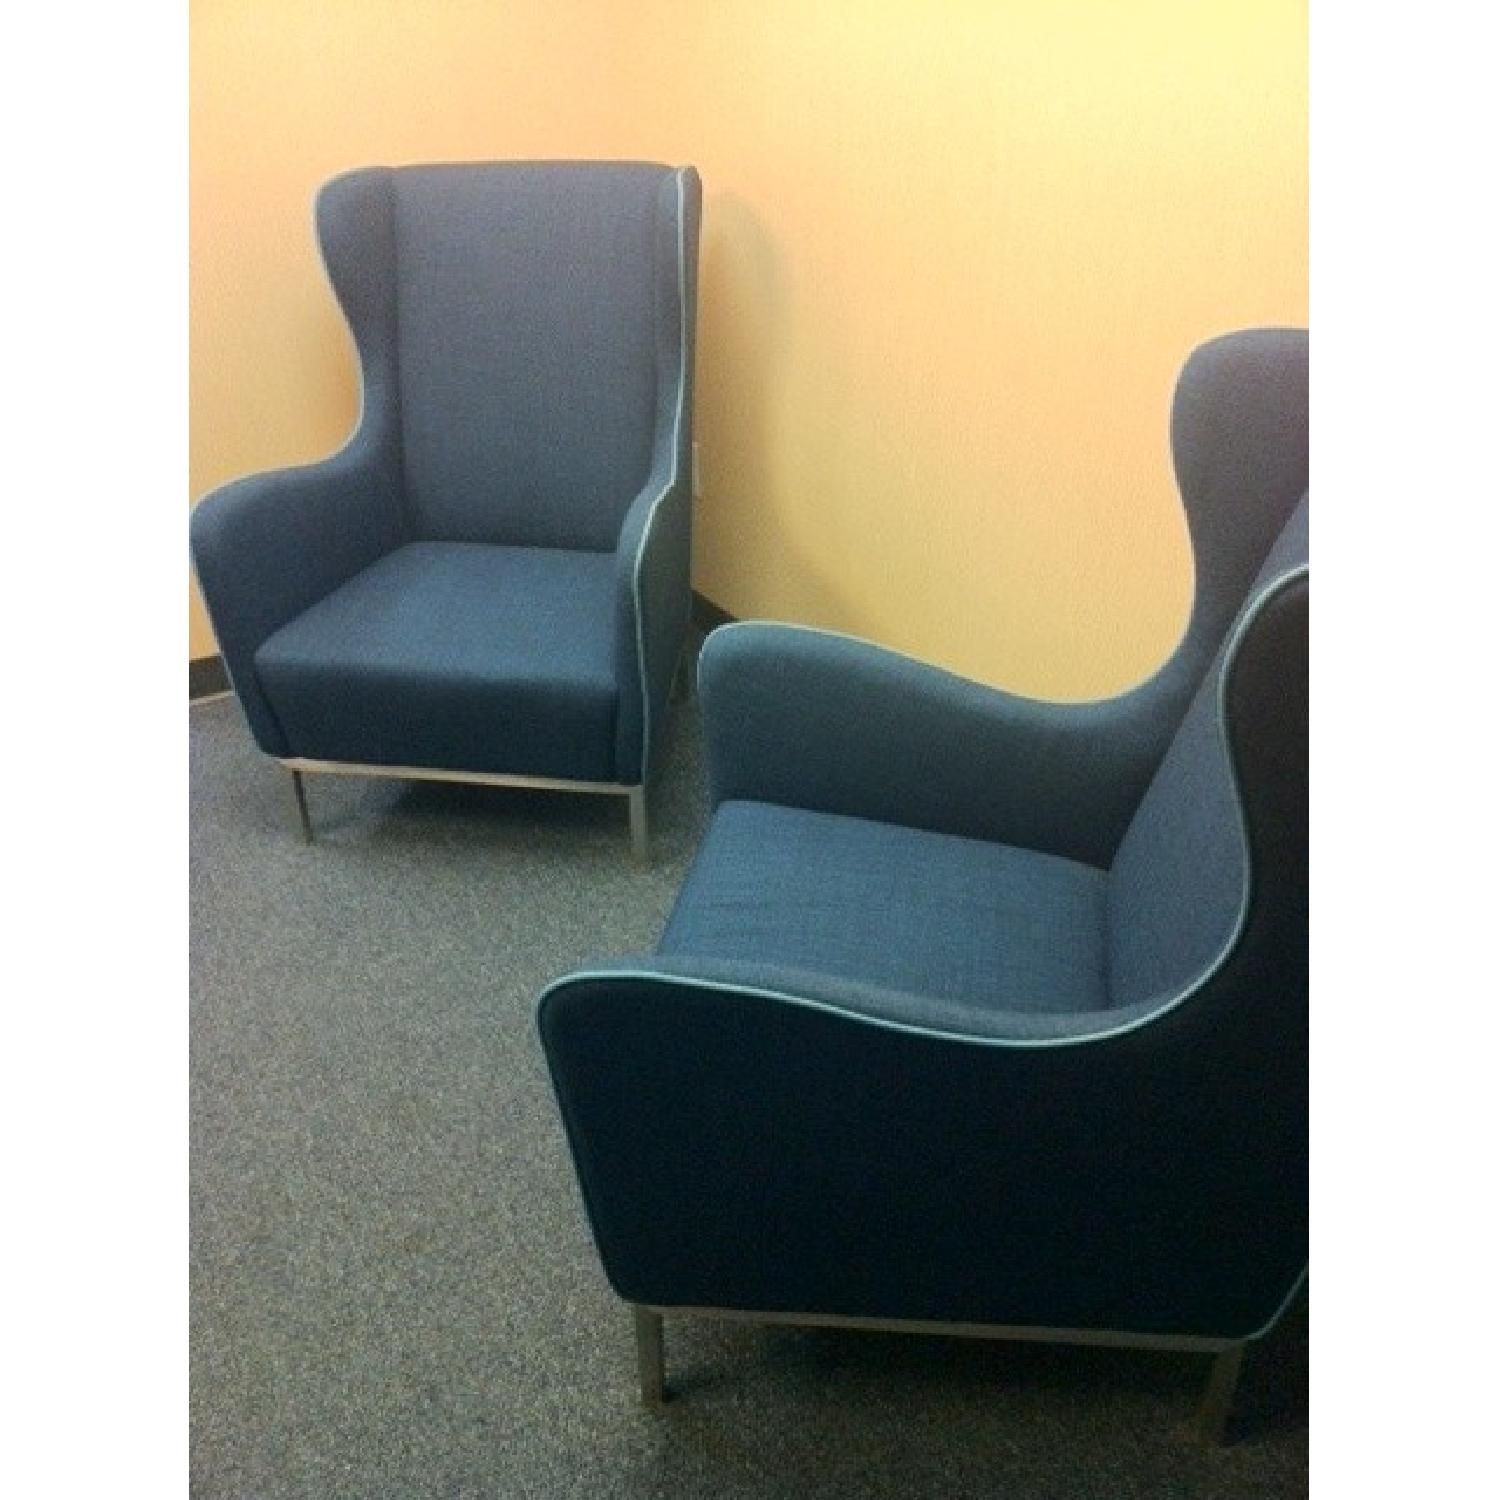 CB2 Study Wingback Chair in Pacific Blue Set of 2 1